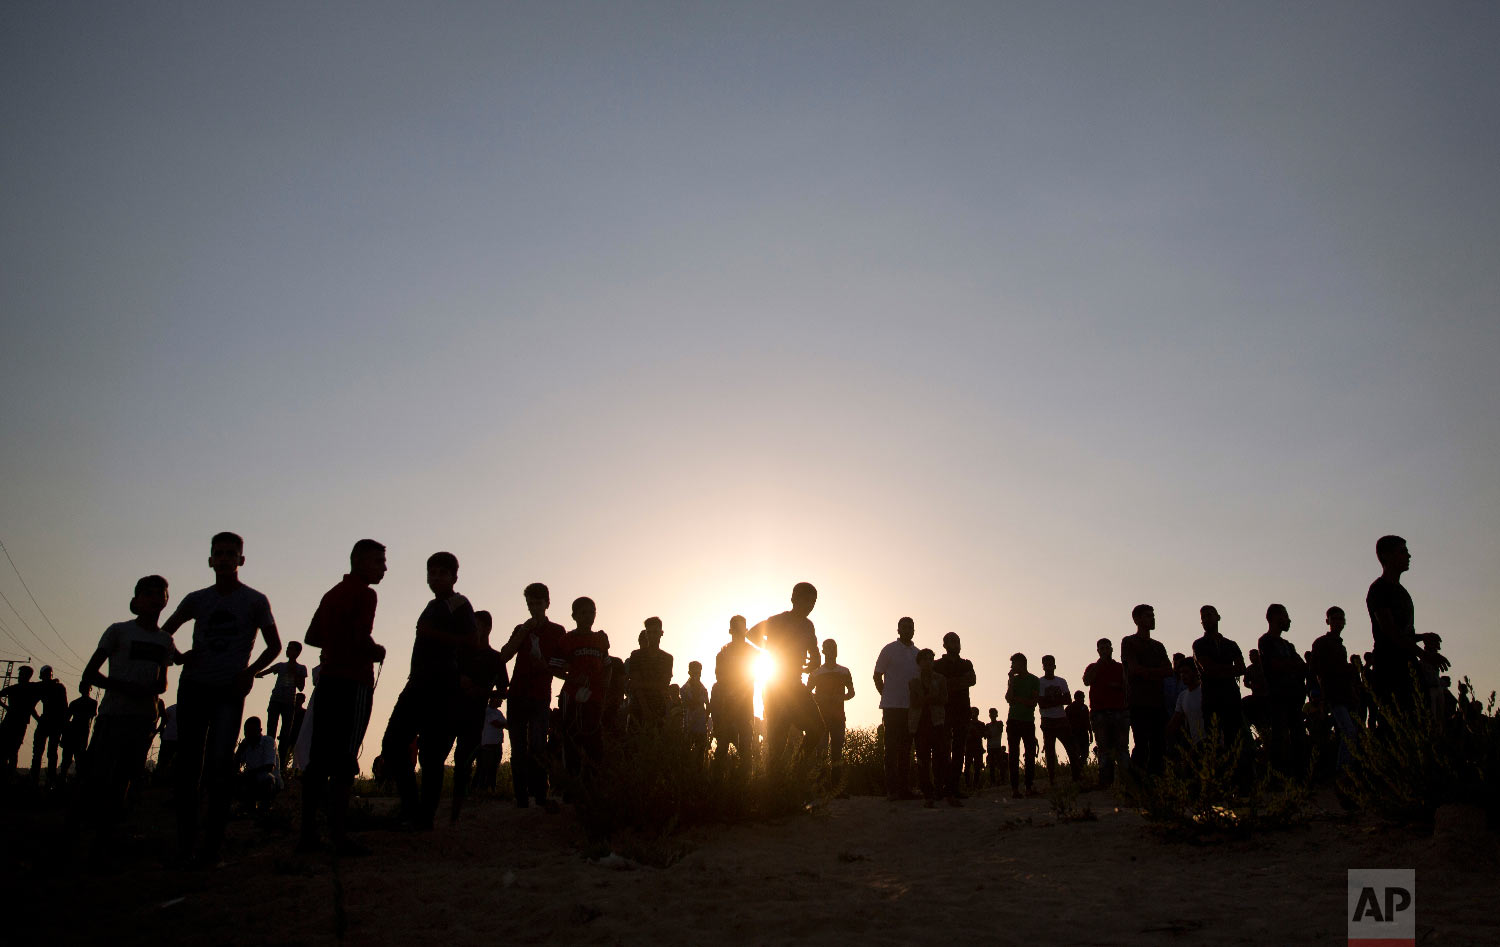 Palestinians protest at the entrance of Erez border crossing between Gaza and Israel, in the northern Gaza Strip, Sept. 26, 2018. (AP Photo/Khalil Hamra)